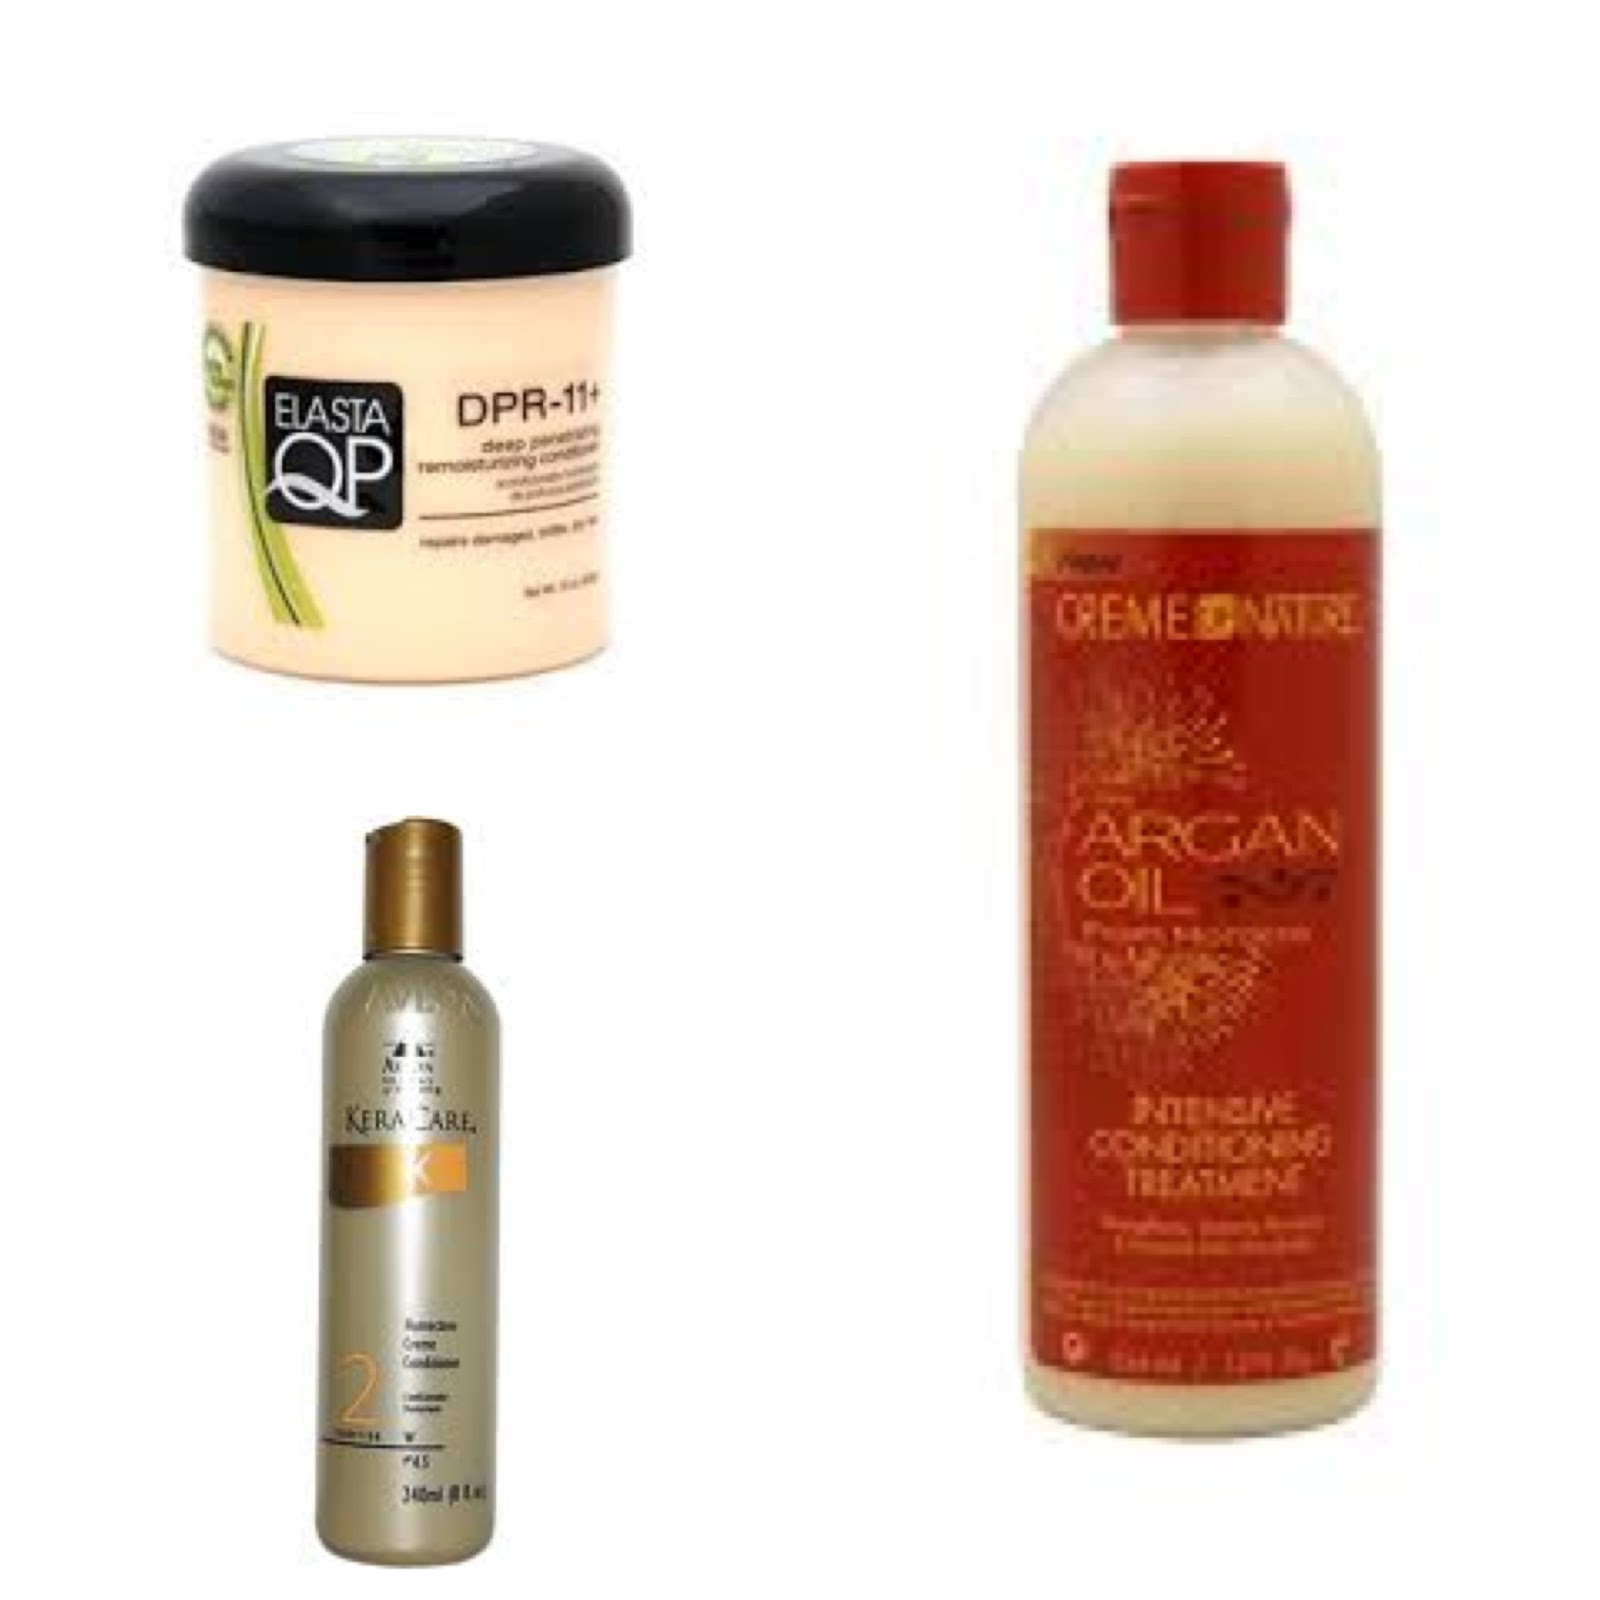 The Healthy Hair Diary: My Staple Products - Updated 07.09.13